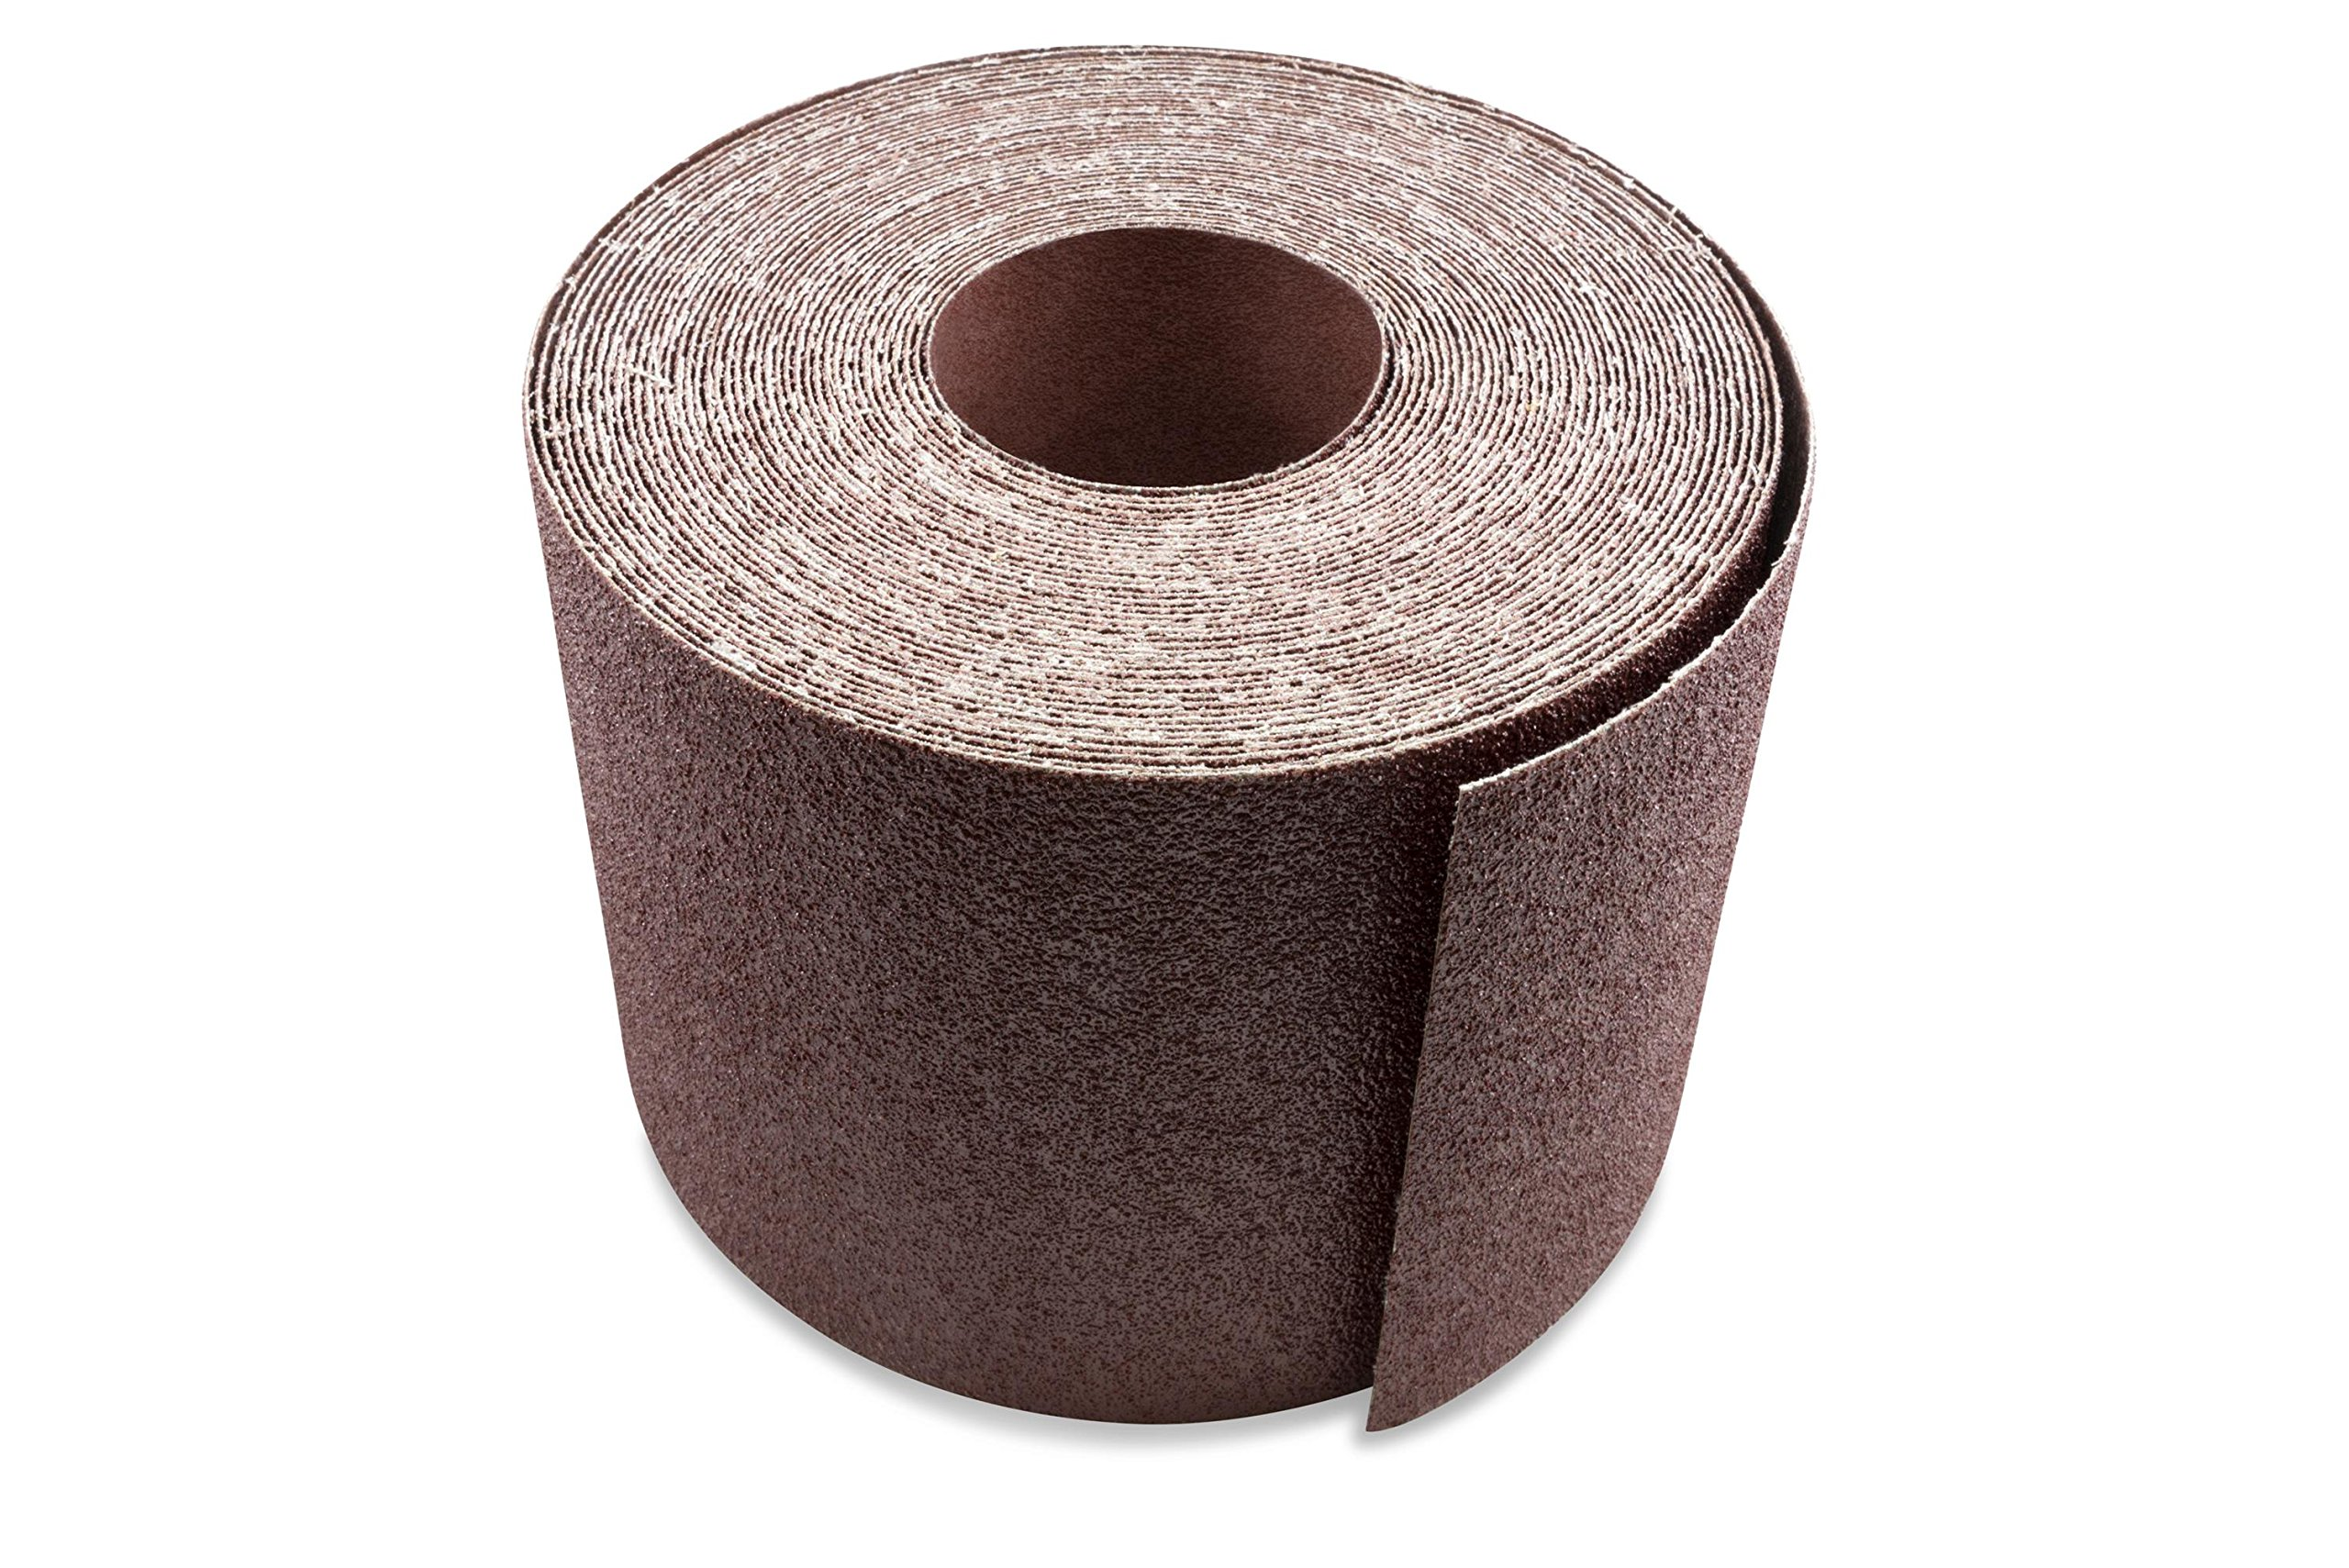 6 Inch X 50 FT 60 Grit Woodworking Drum Sander Strip Roll, Cut to Length